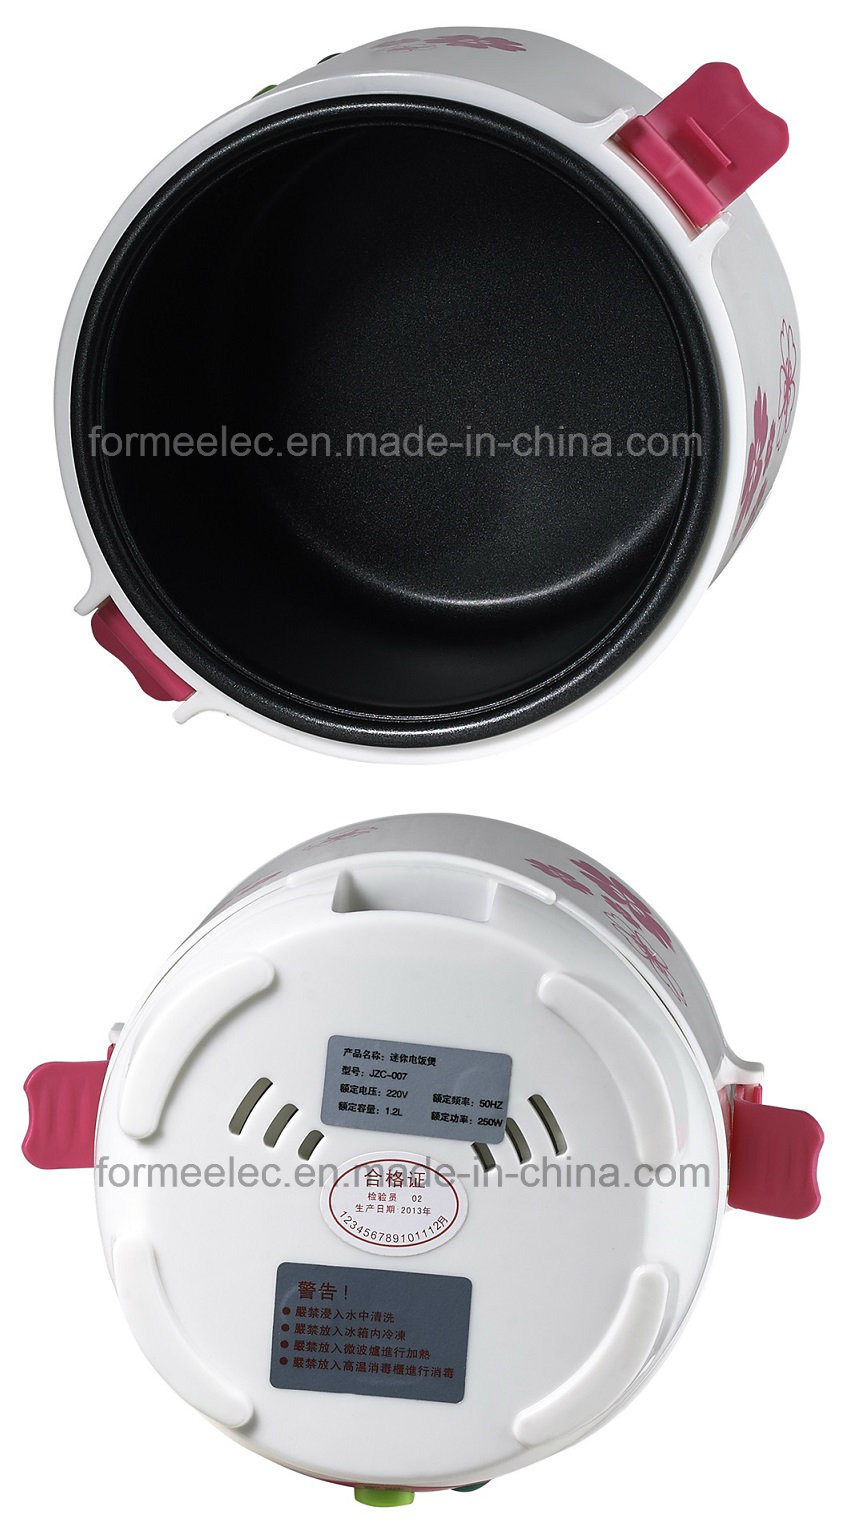 Mini Rice Cooker 1.2L Electric Cooker for Cook Steam Boil